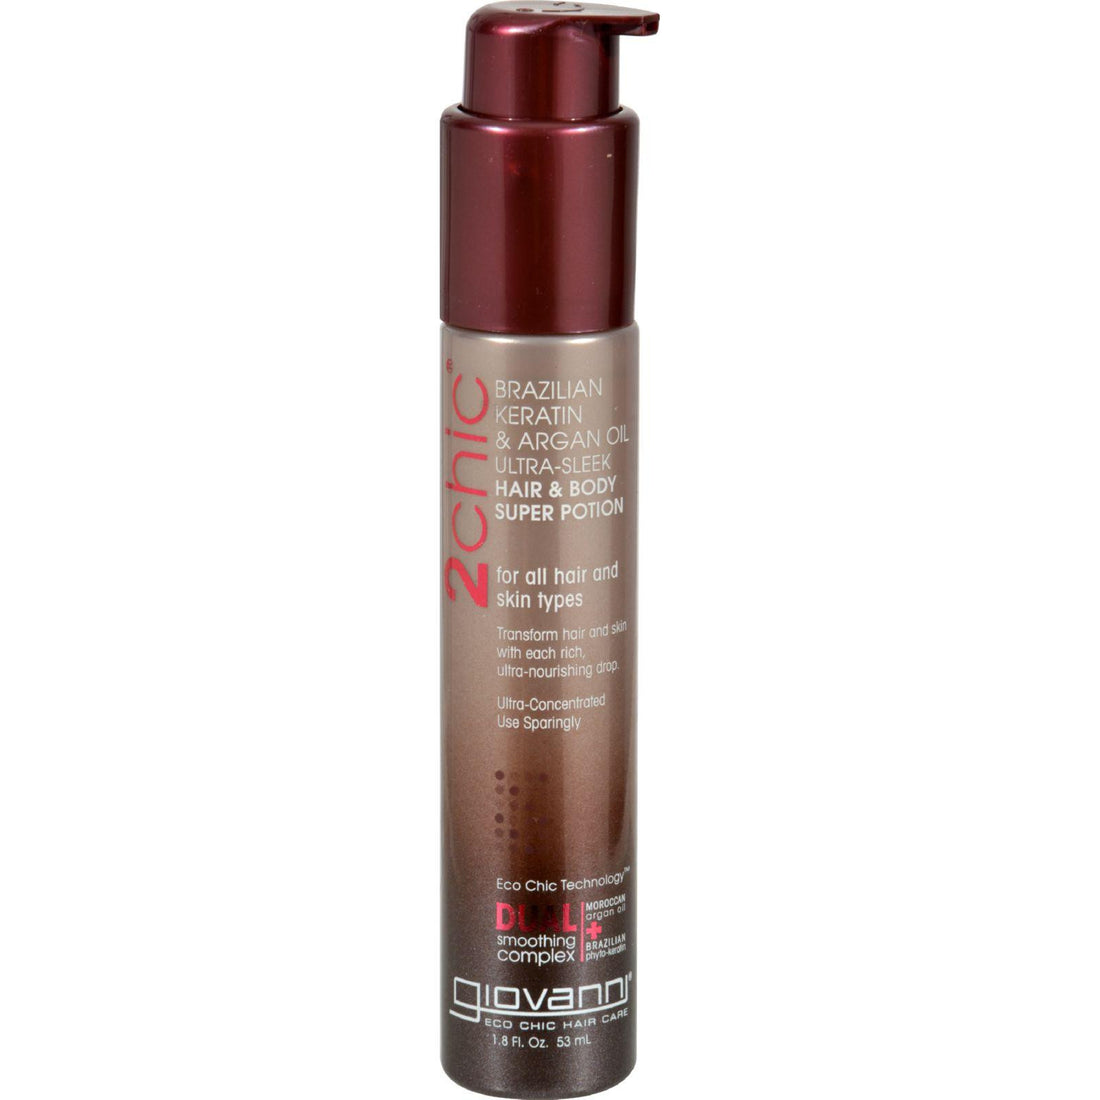 Mother Mantis: Giovanni 2chic Ultra-sleek Hair And Body Super Potion With Brazilian Keratin And Argan Oil - 1.8 Fl Oz Giovanni Hair Care Products